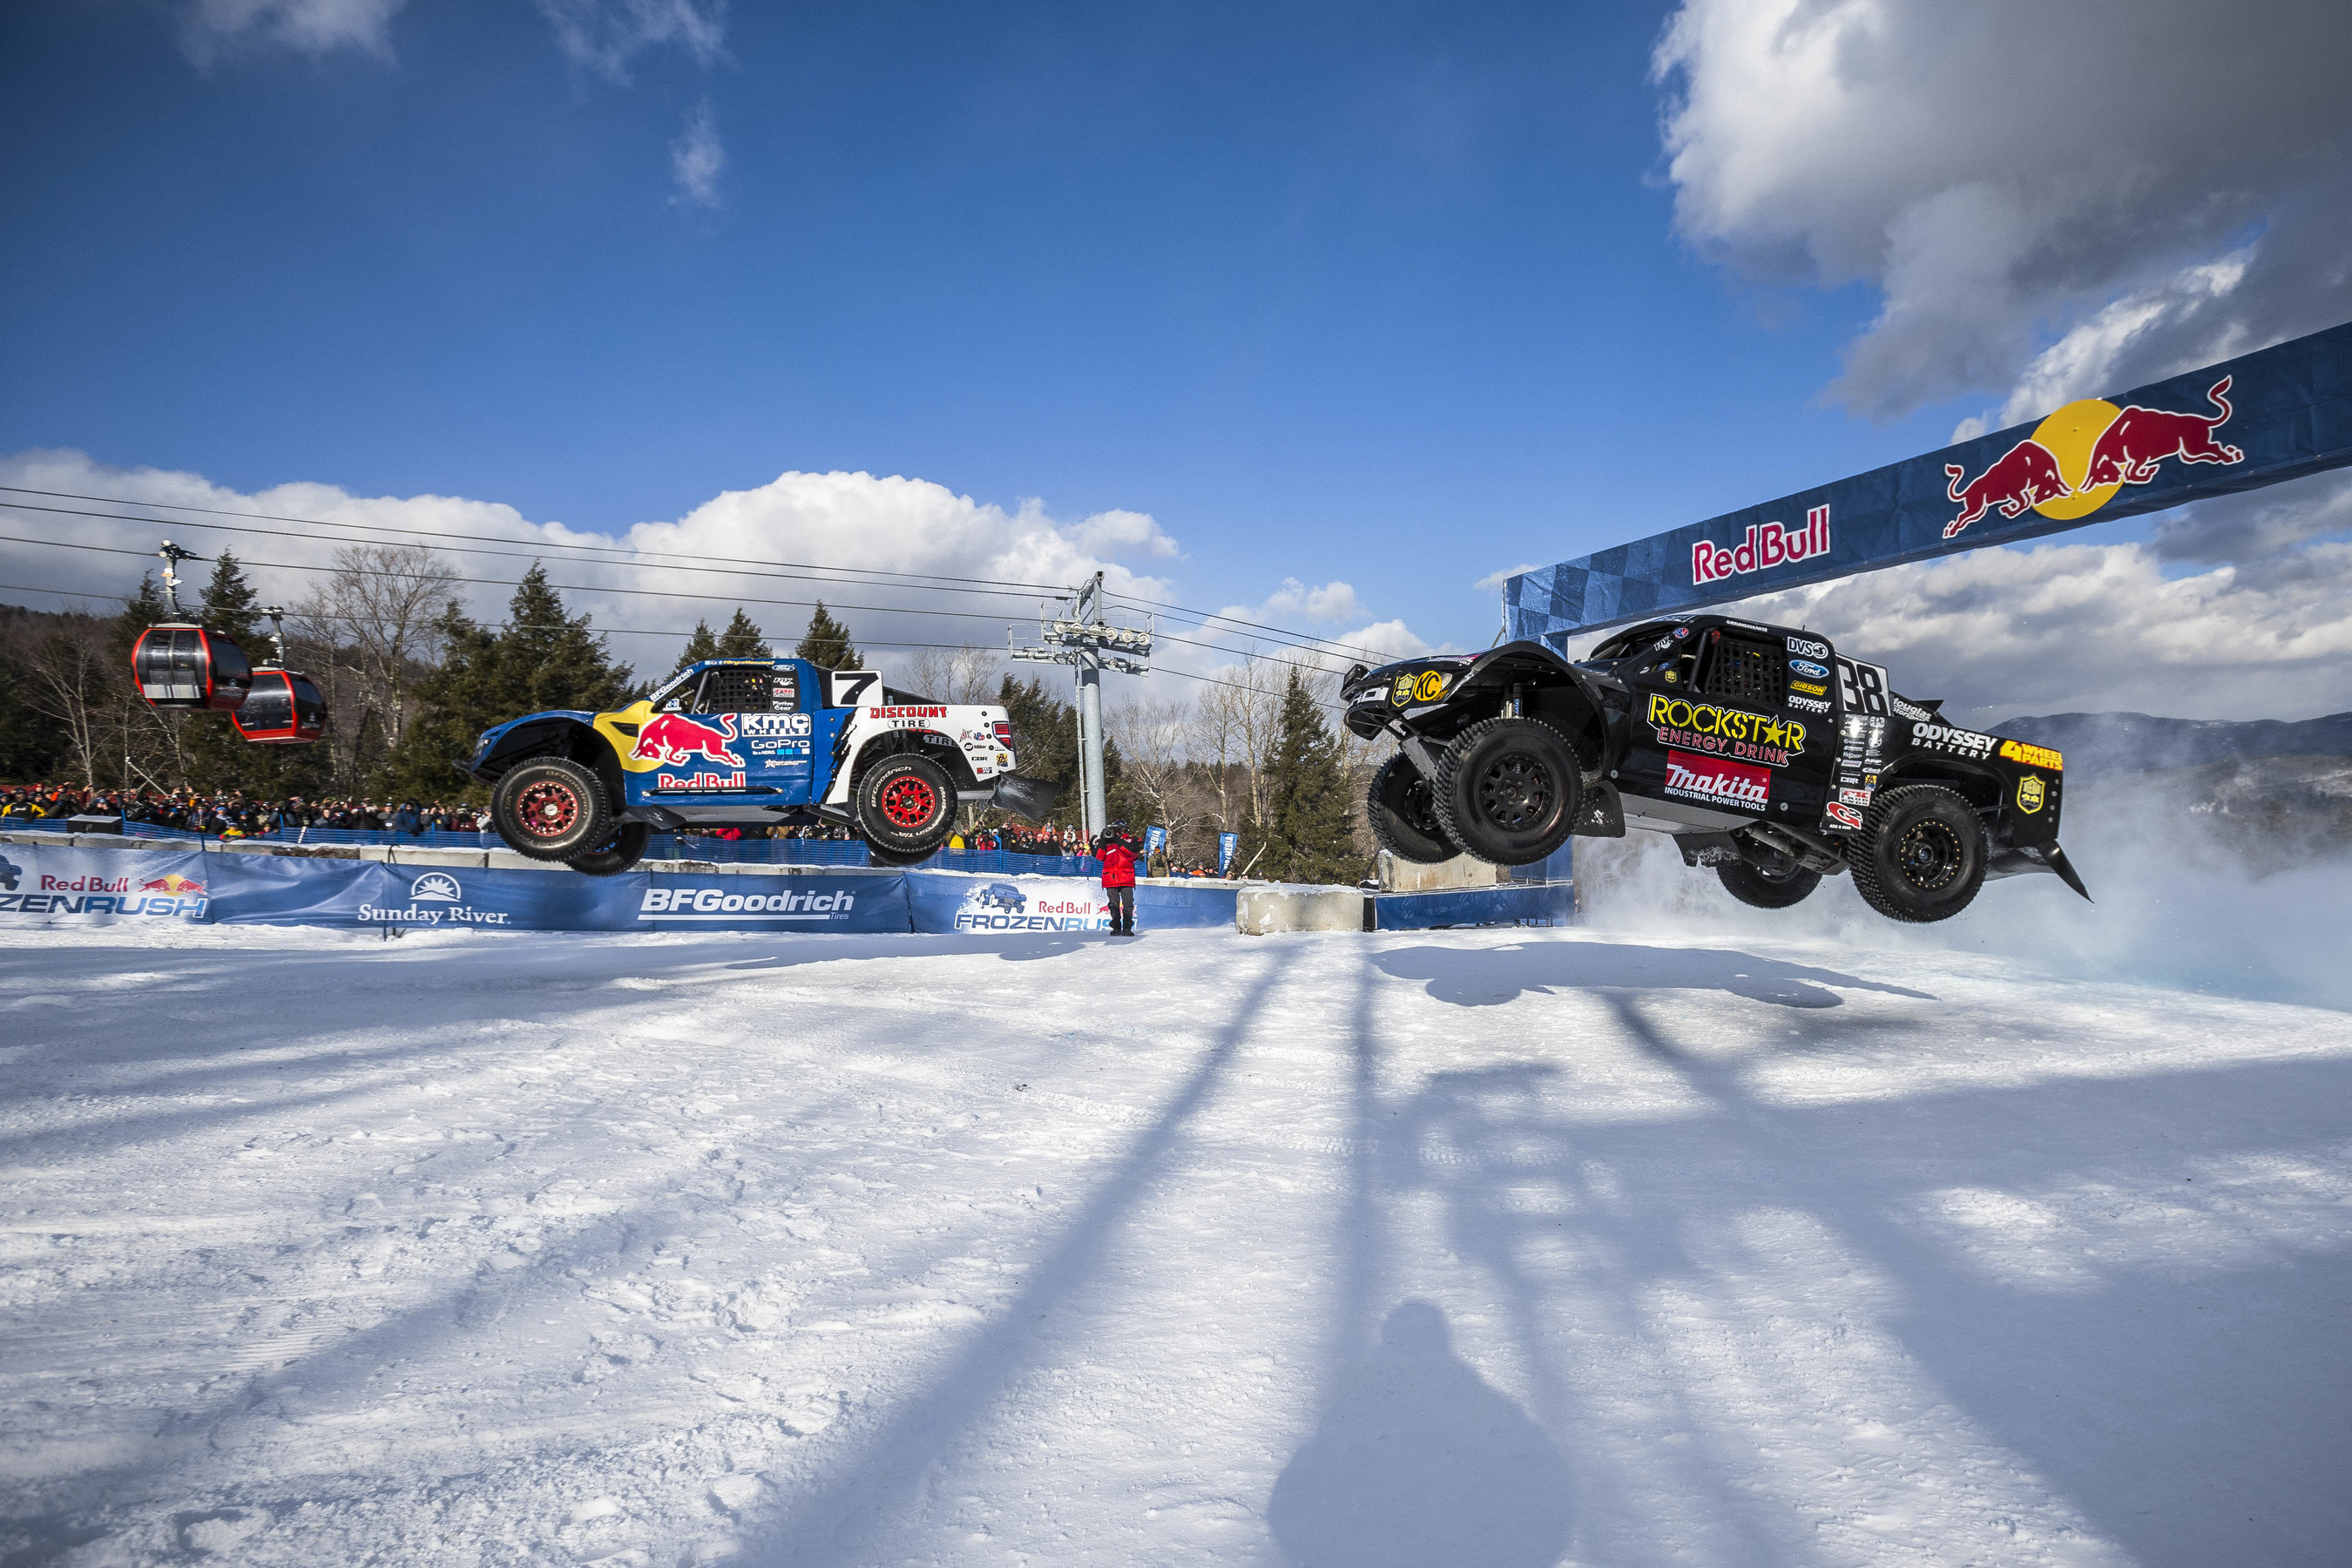 Off-road trucks race head-to-head on snow for Red Bull Frozen.